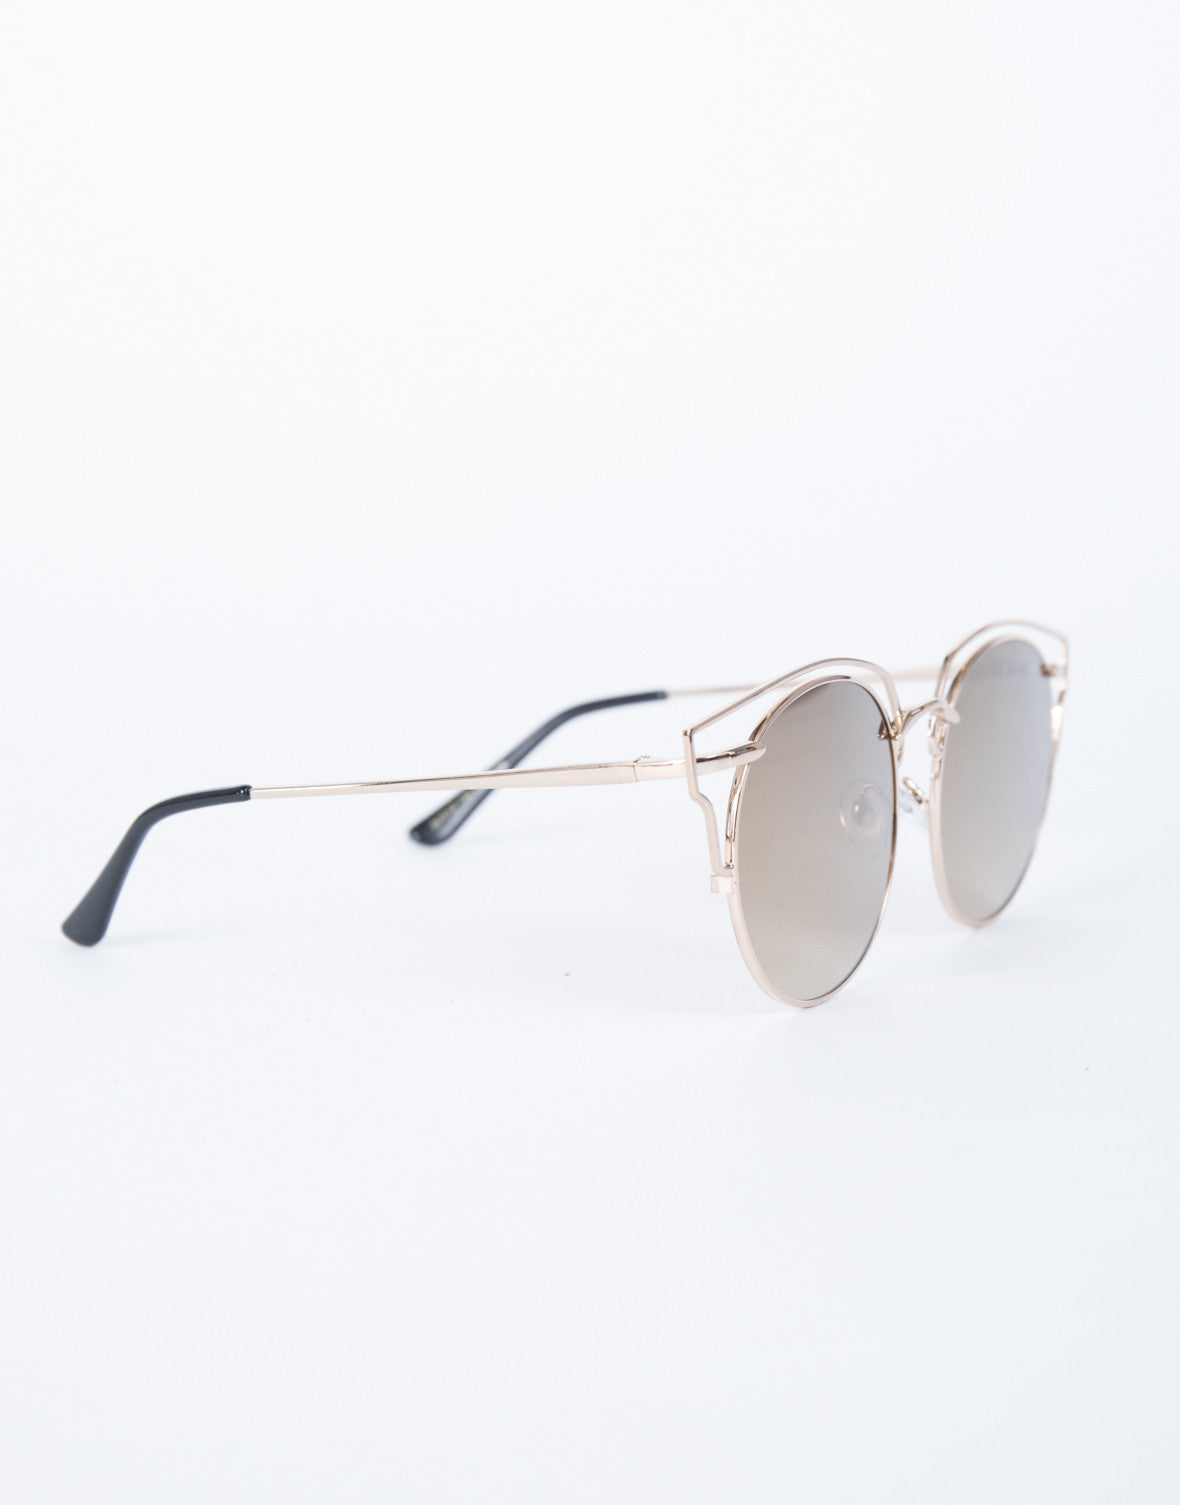 Brown Tessa Cut-Out Sunnies - Side View